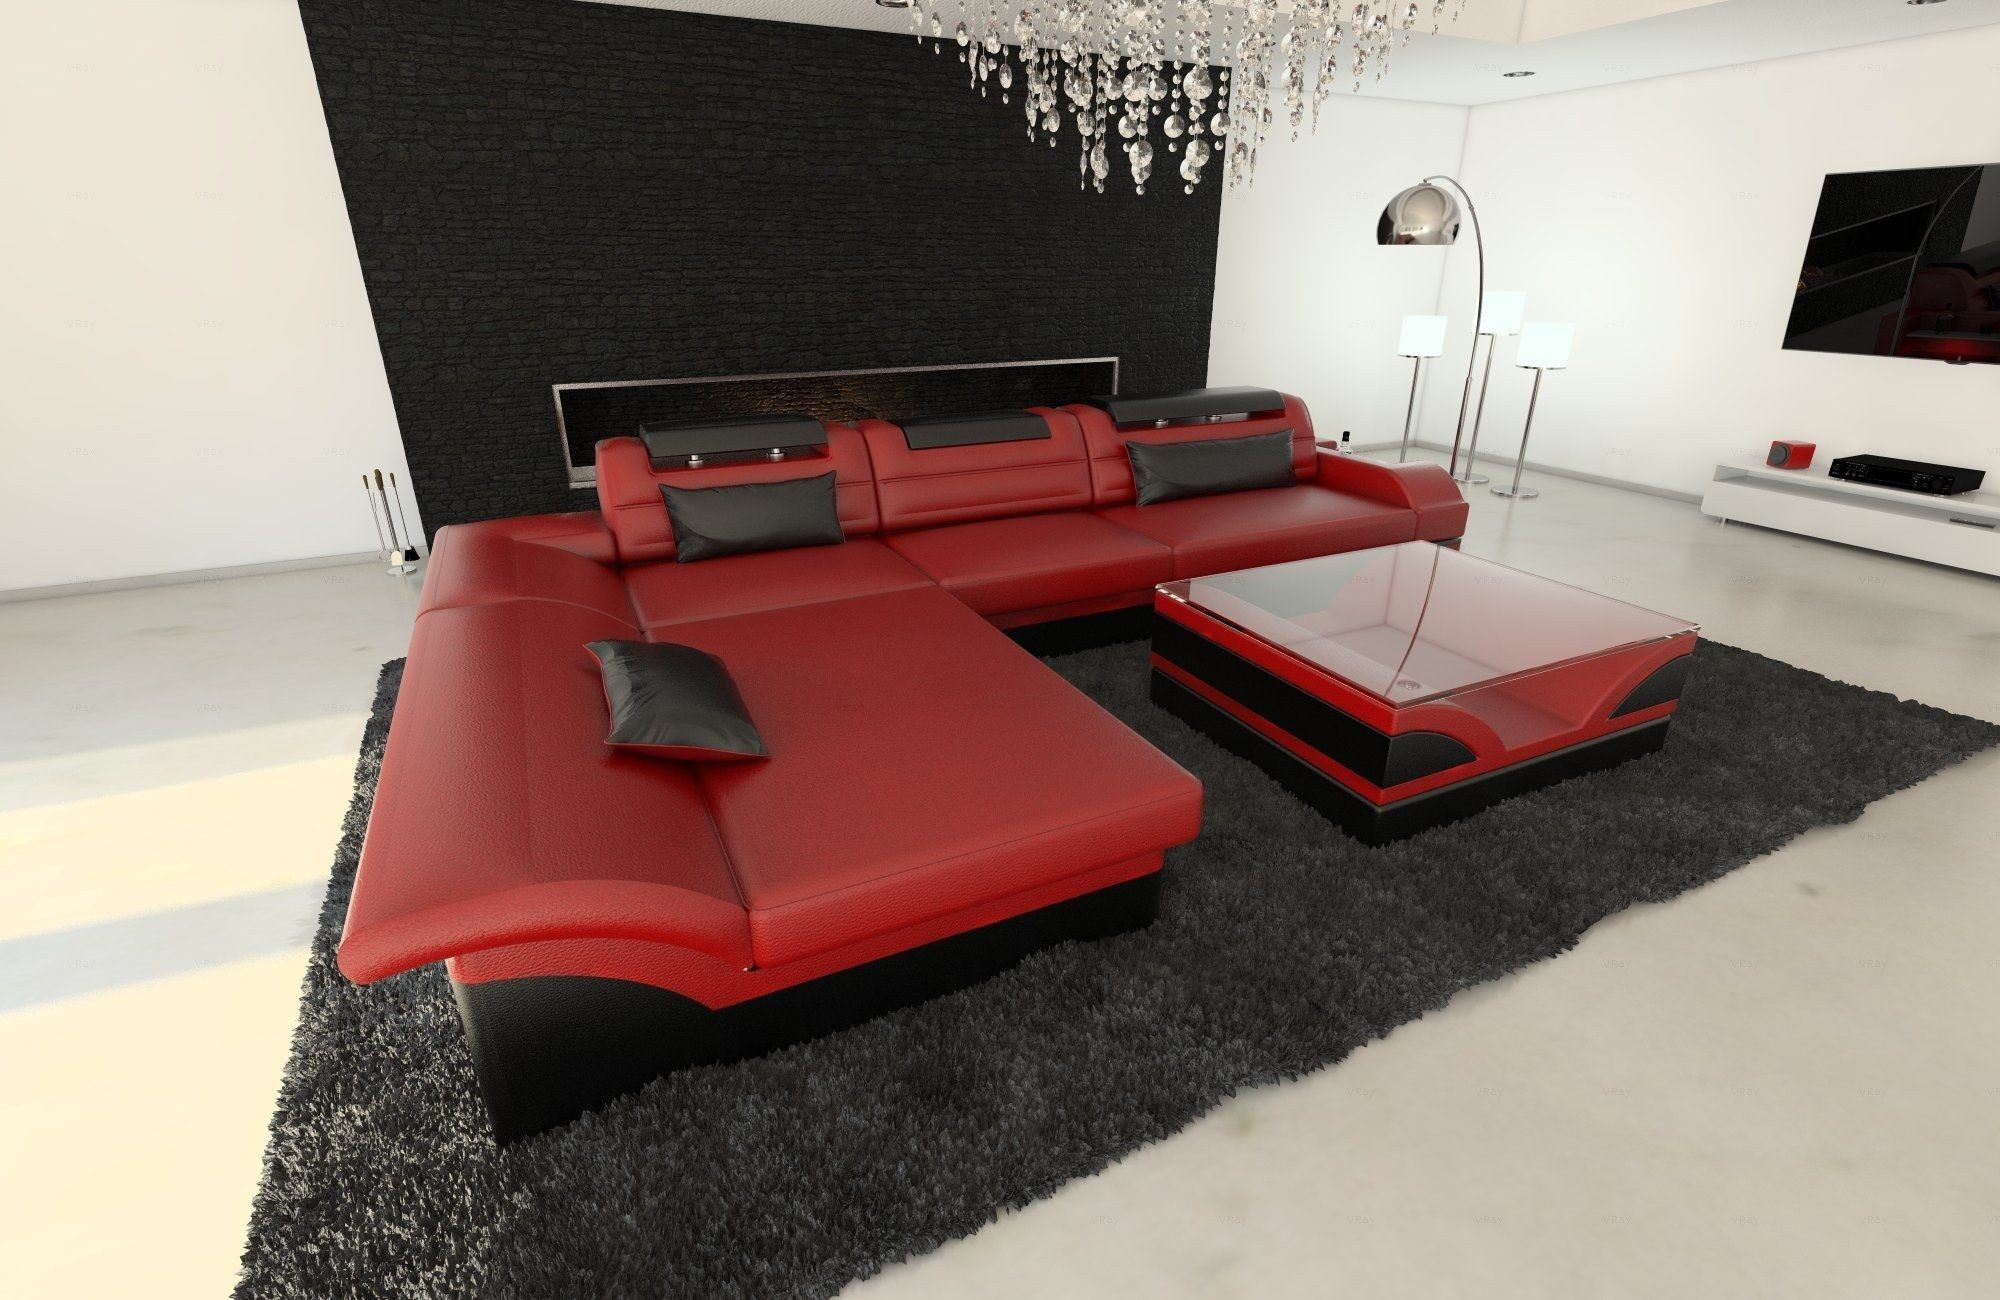 ledersofa monza l form rot schwarz. Black Bedroom Furniture Sets. Home Design Ideas